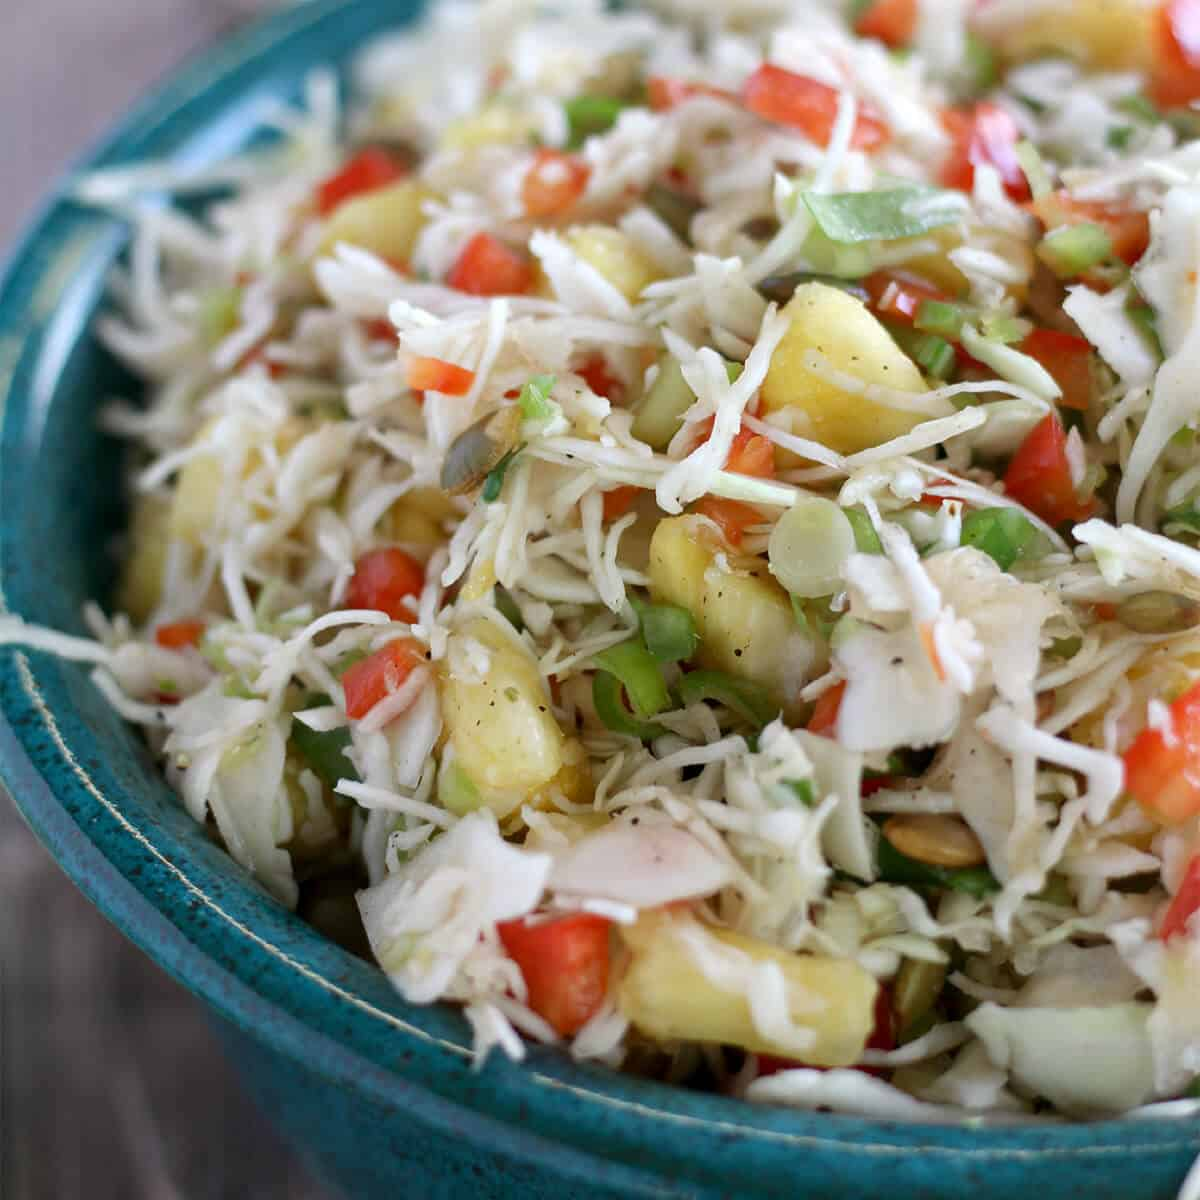 Closeup photo of pineapple slaw in a blue pottery bowl.